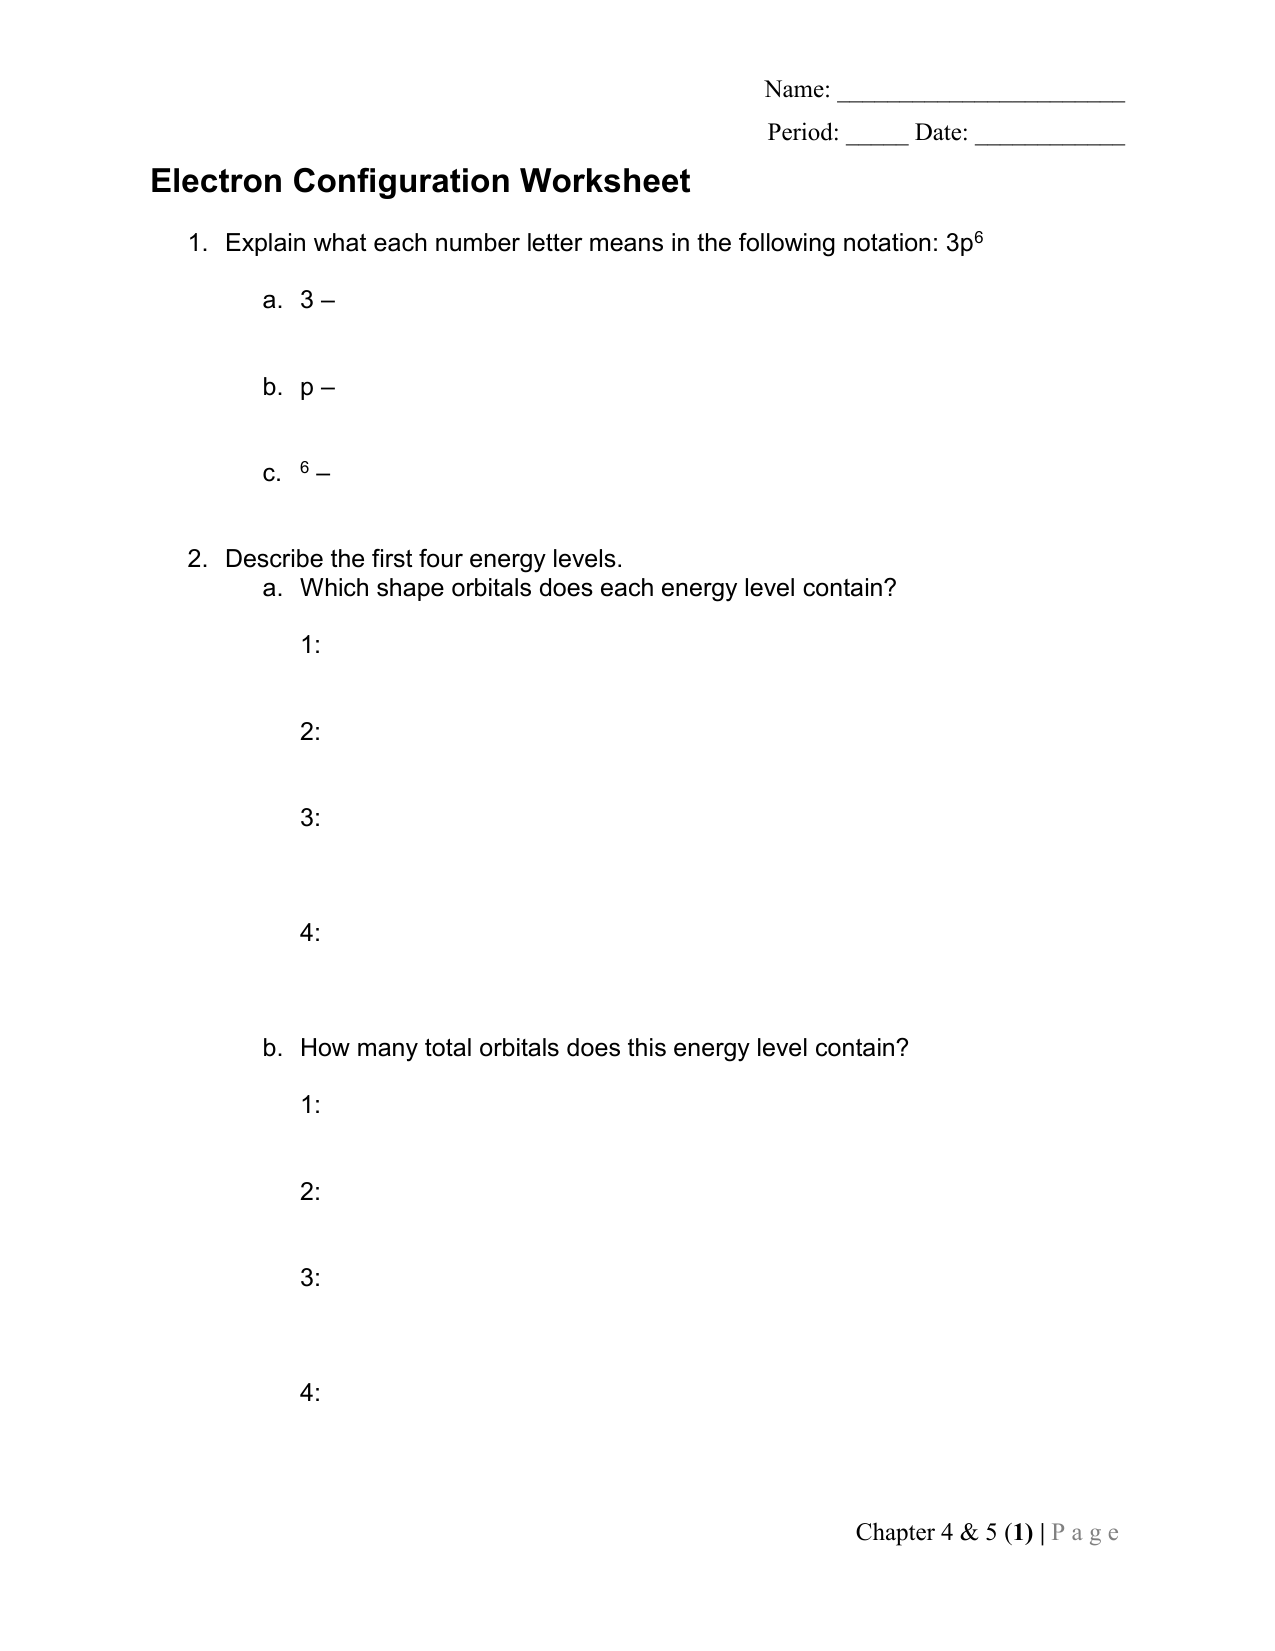 Worksheets Chapter 4 5